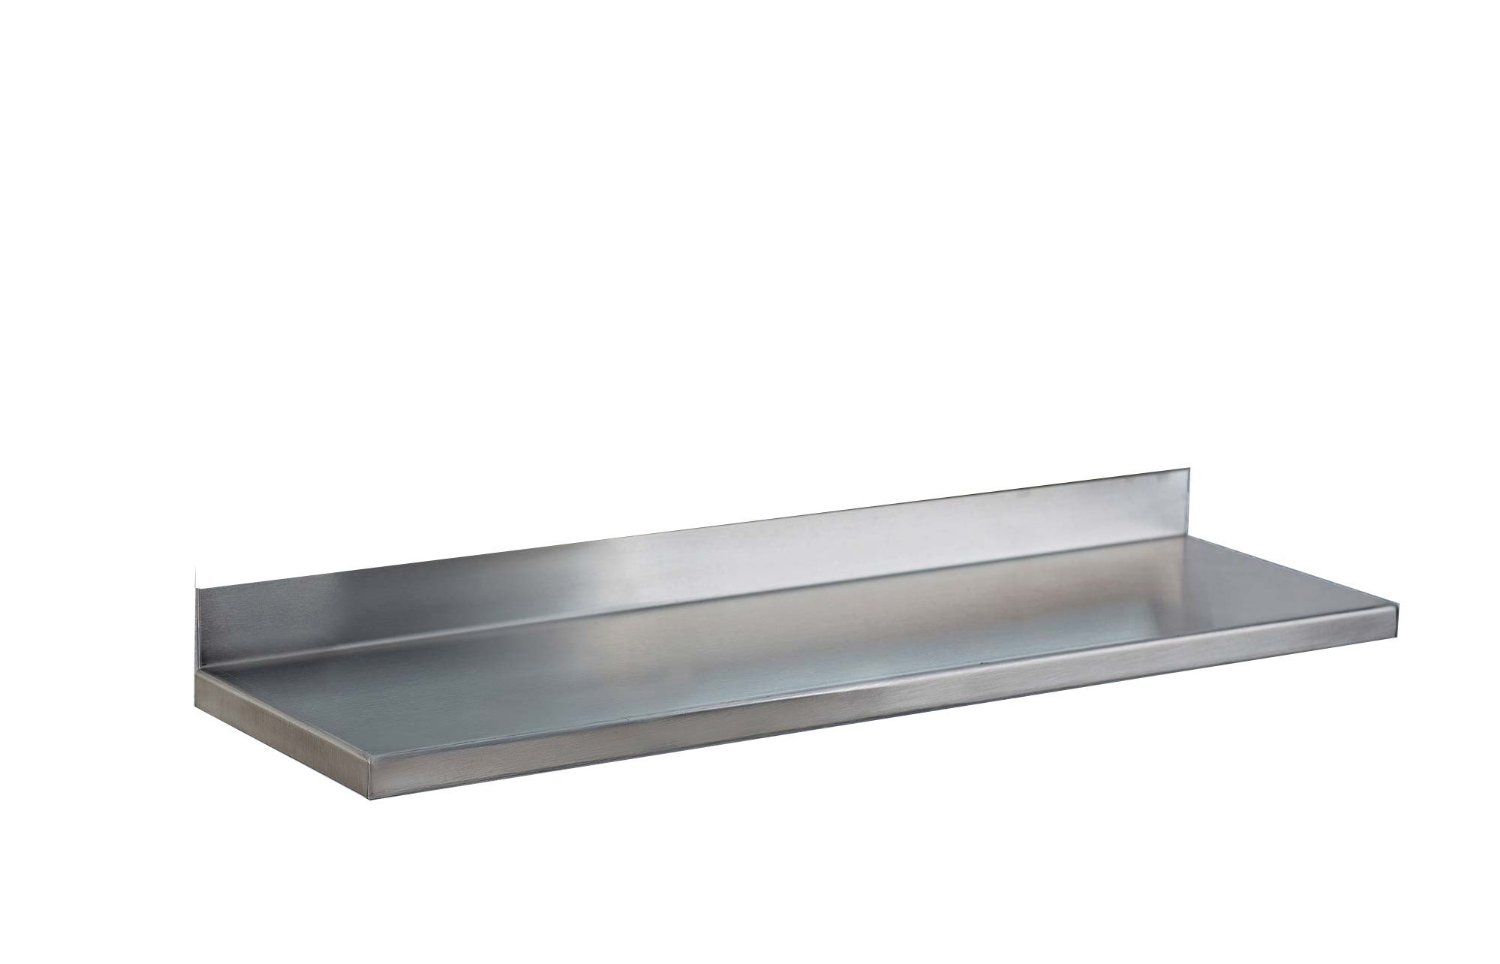 48-inch x 6-inch, Integral shelf, satin finish